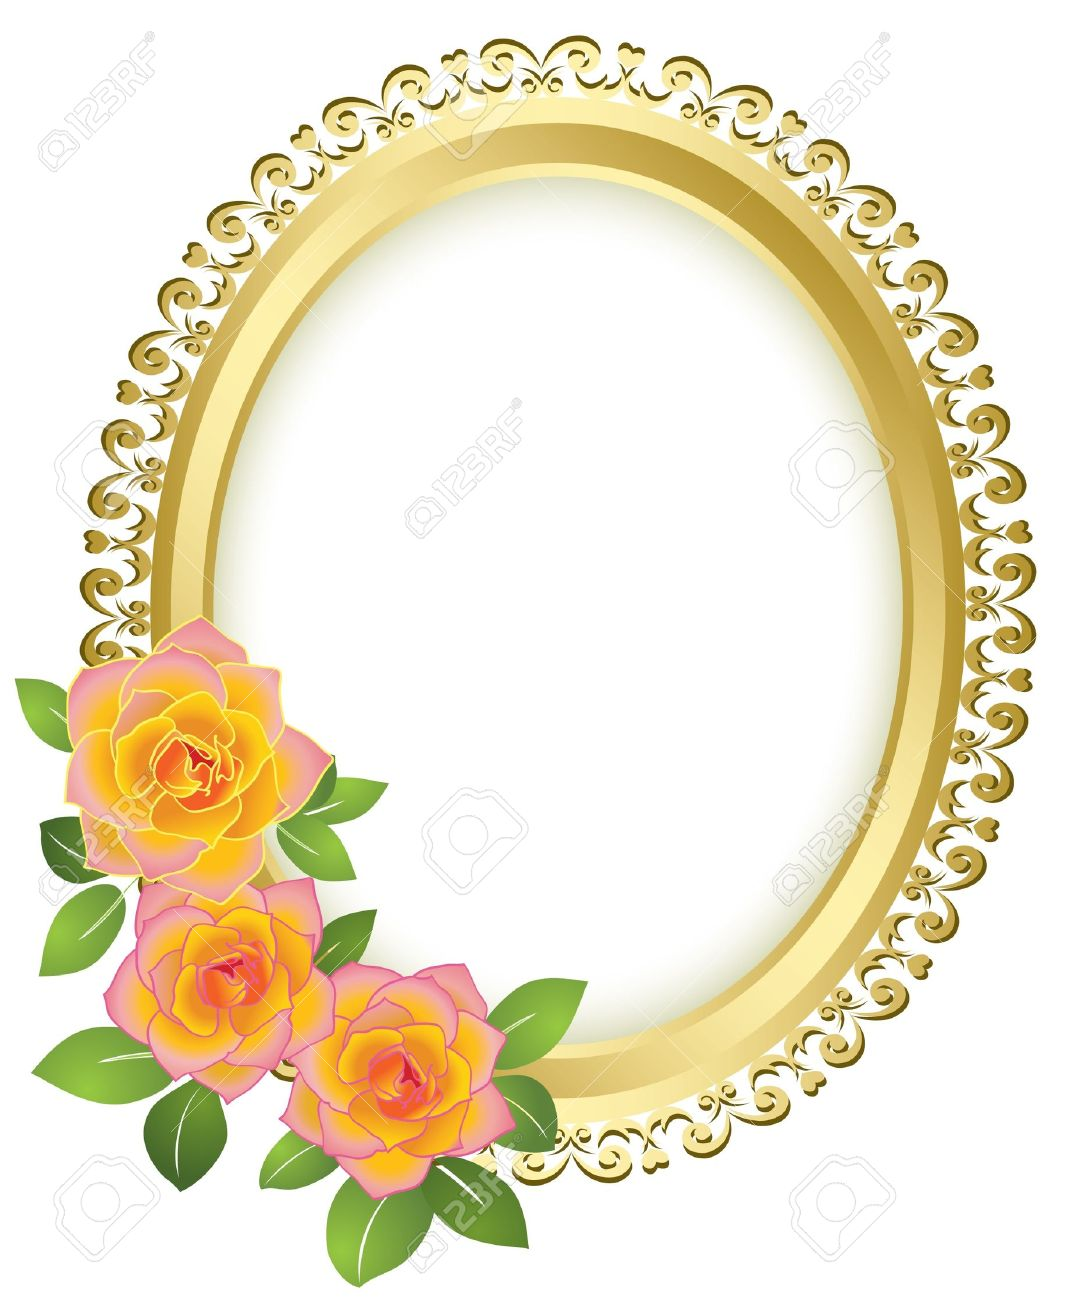 What are some oval frame styles?